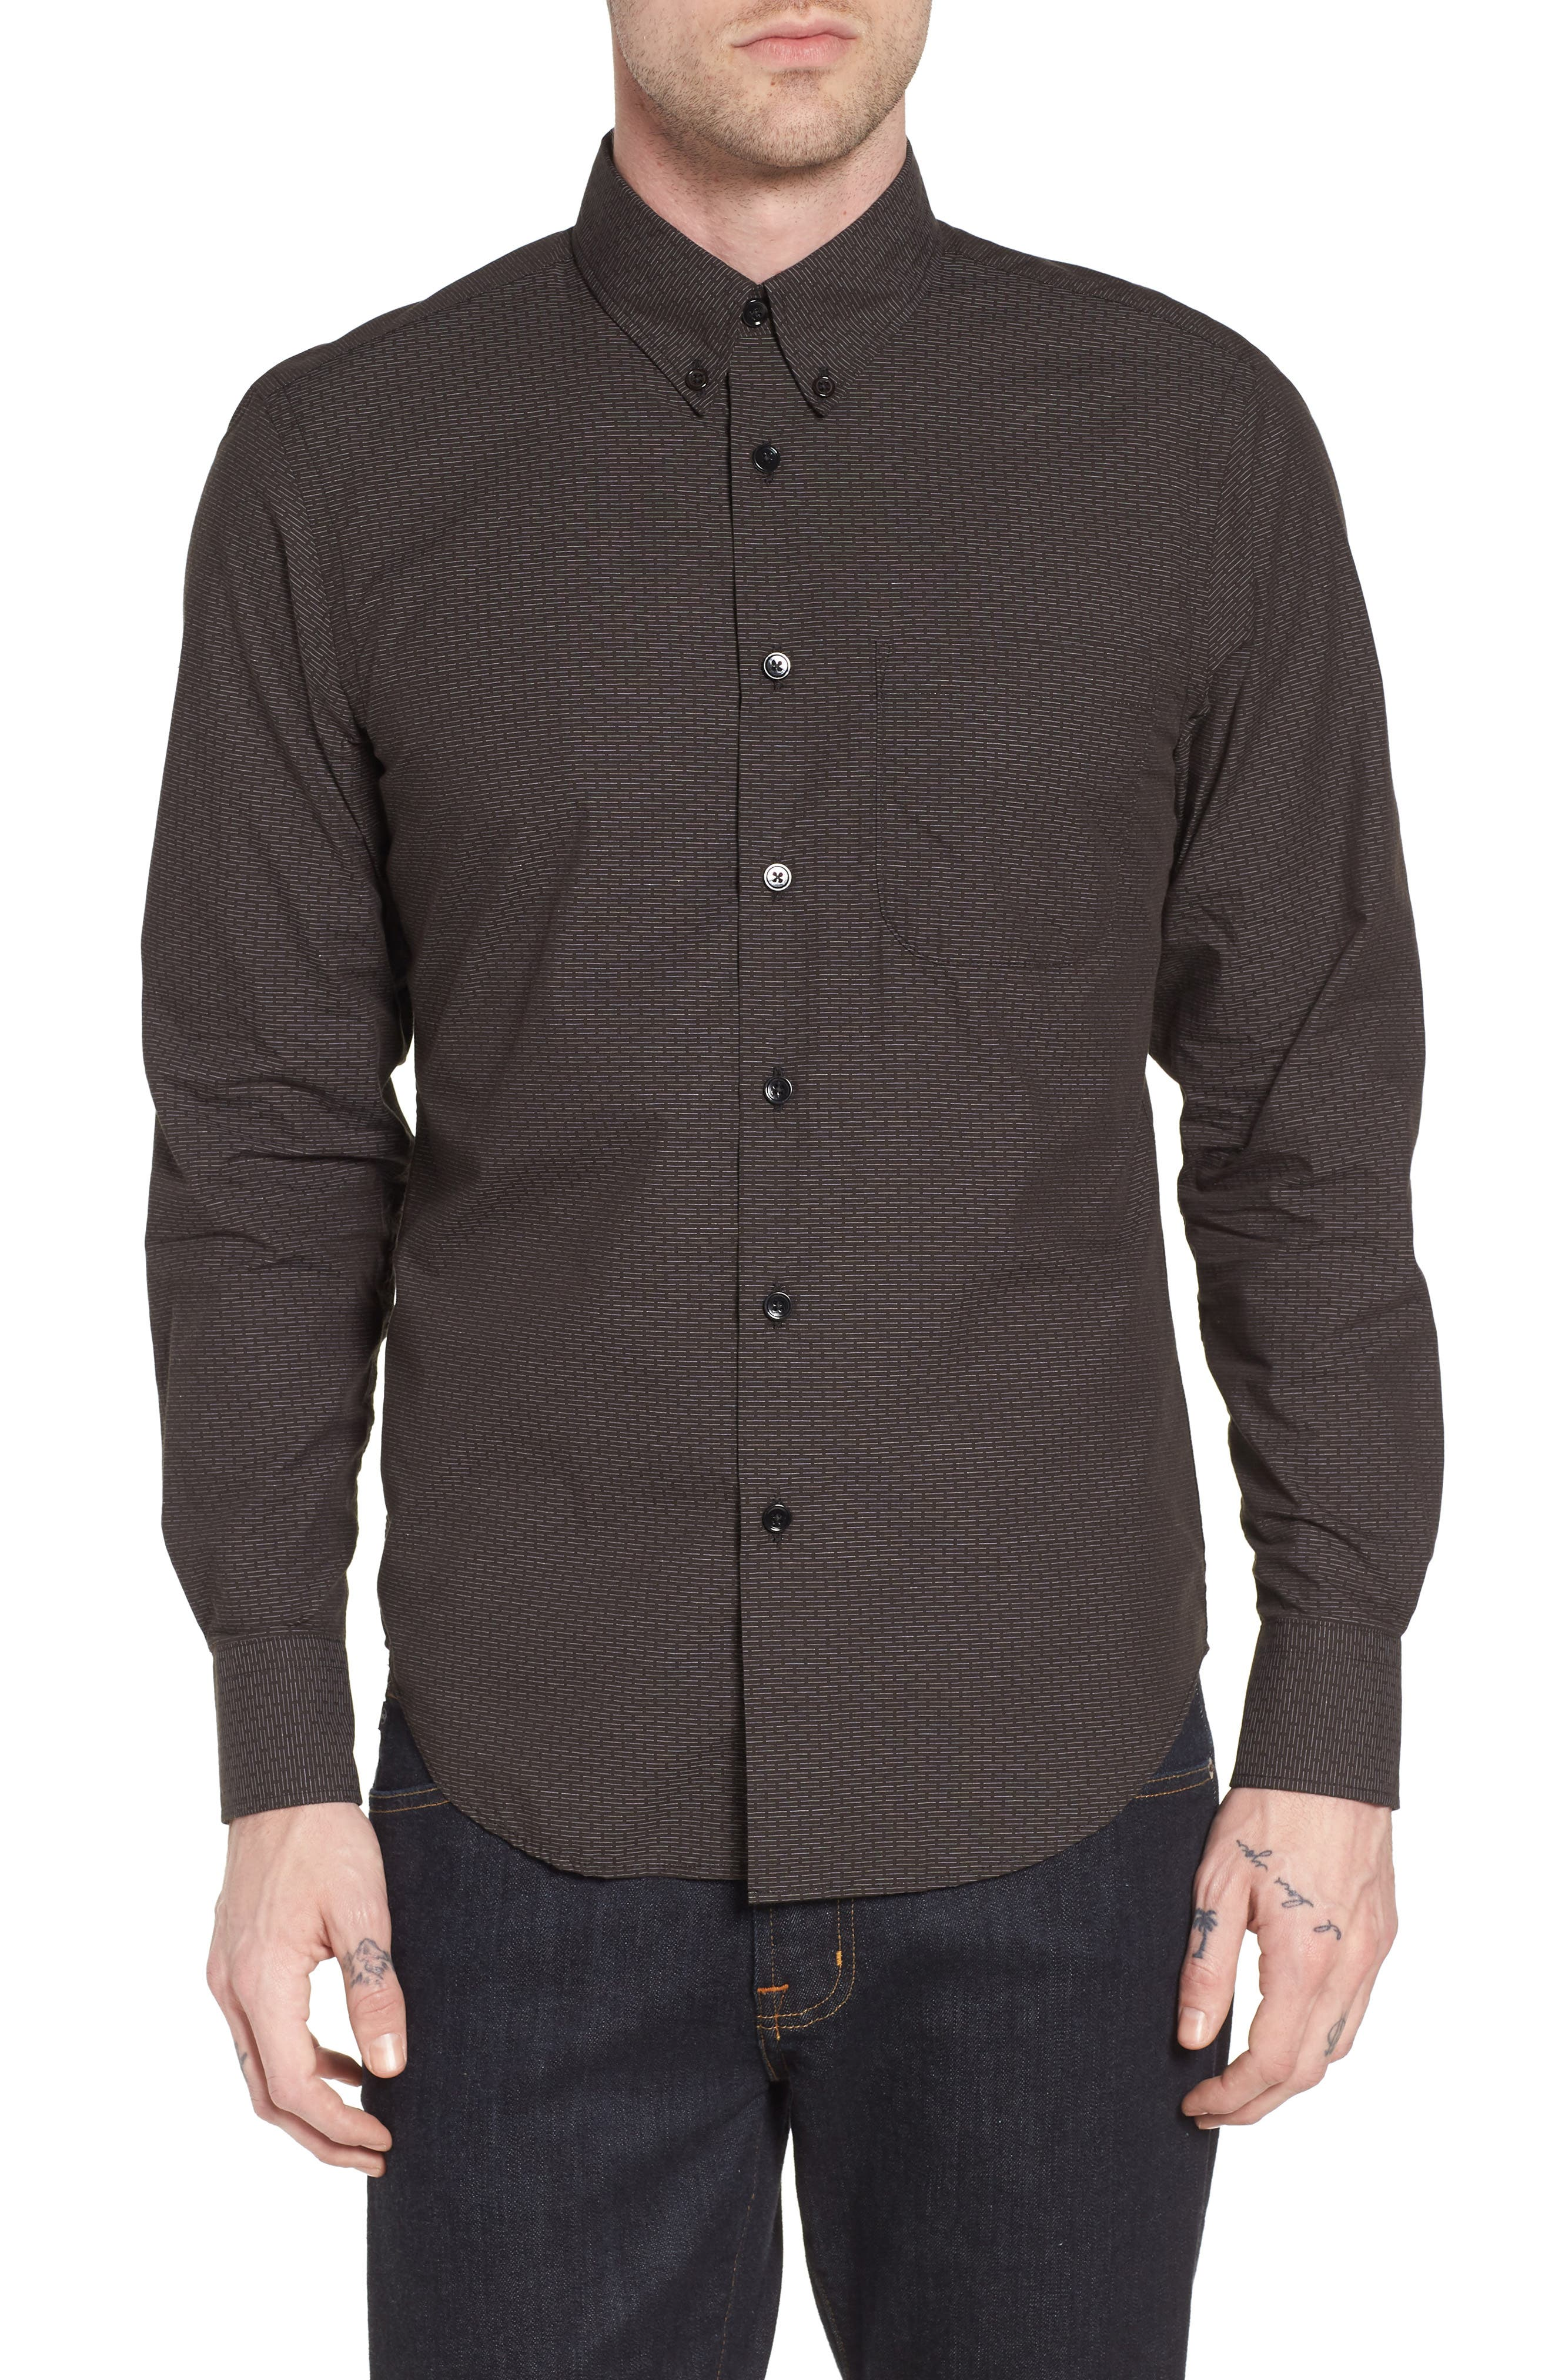 Naked & Famous Dobby Woven Shirt,                         Main,                         color, 001